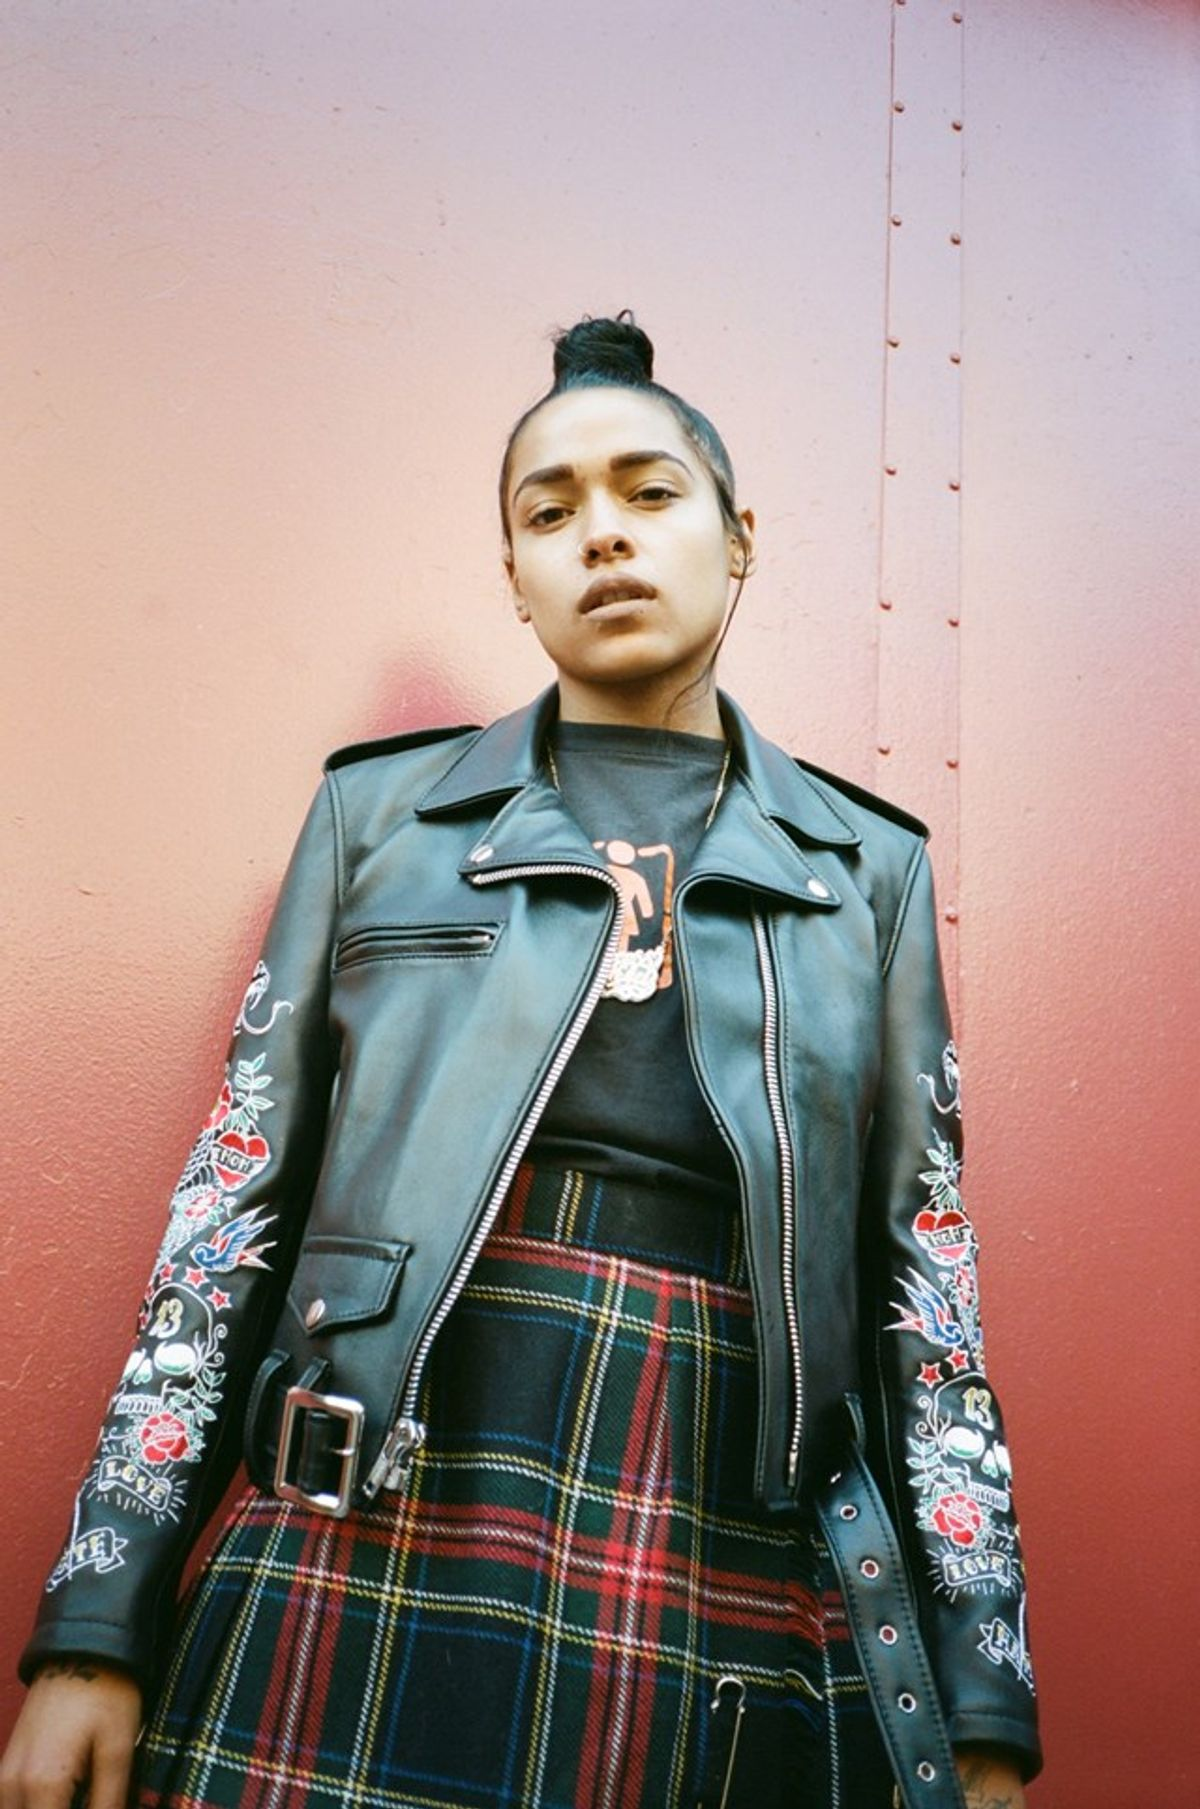 Princess Nokia Is The Streetwear Star For MadeMe x Schott's Collab